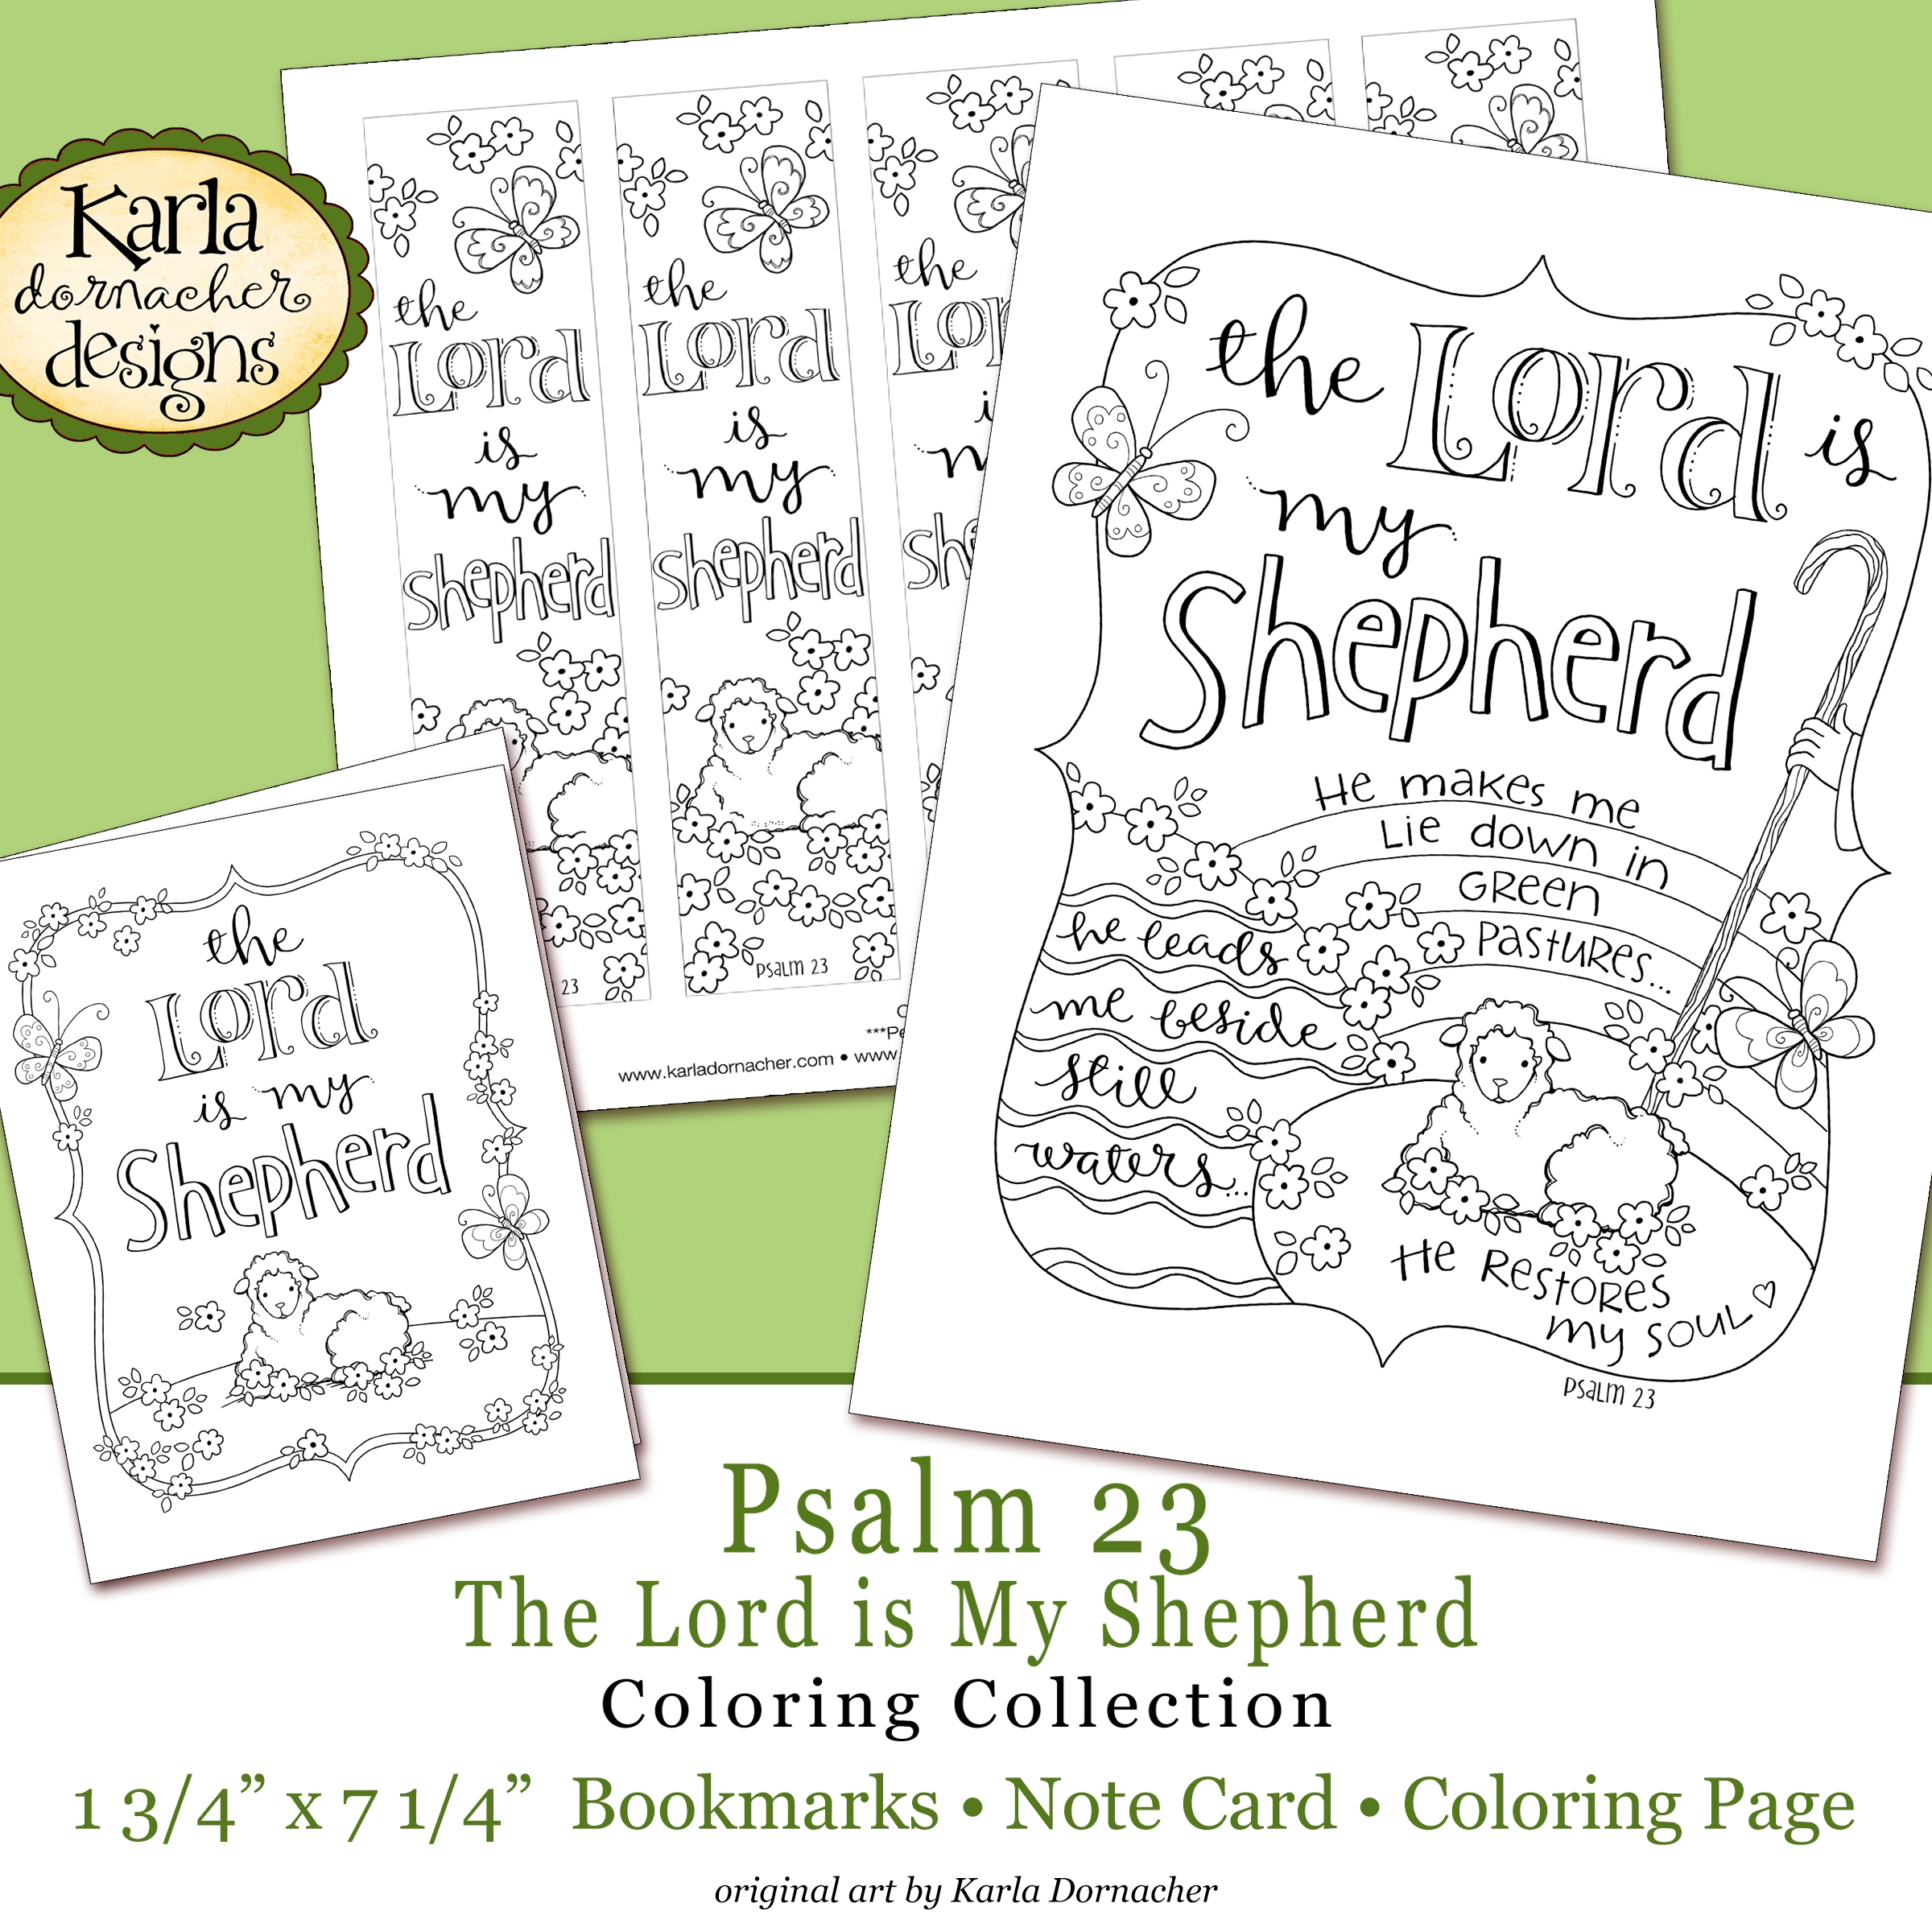 psalm 23 coloring page - easter psalm 23 bible journaling printable coloring collection